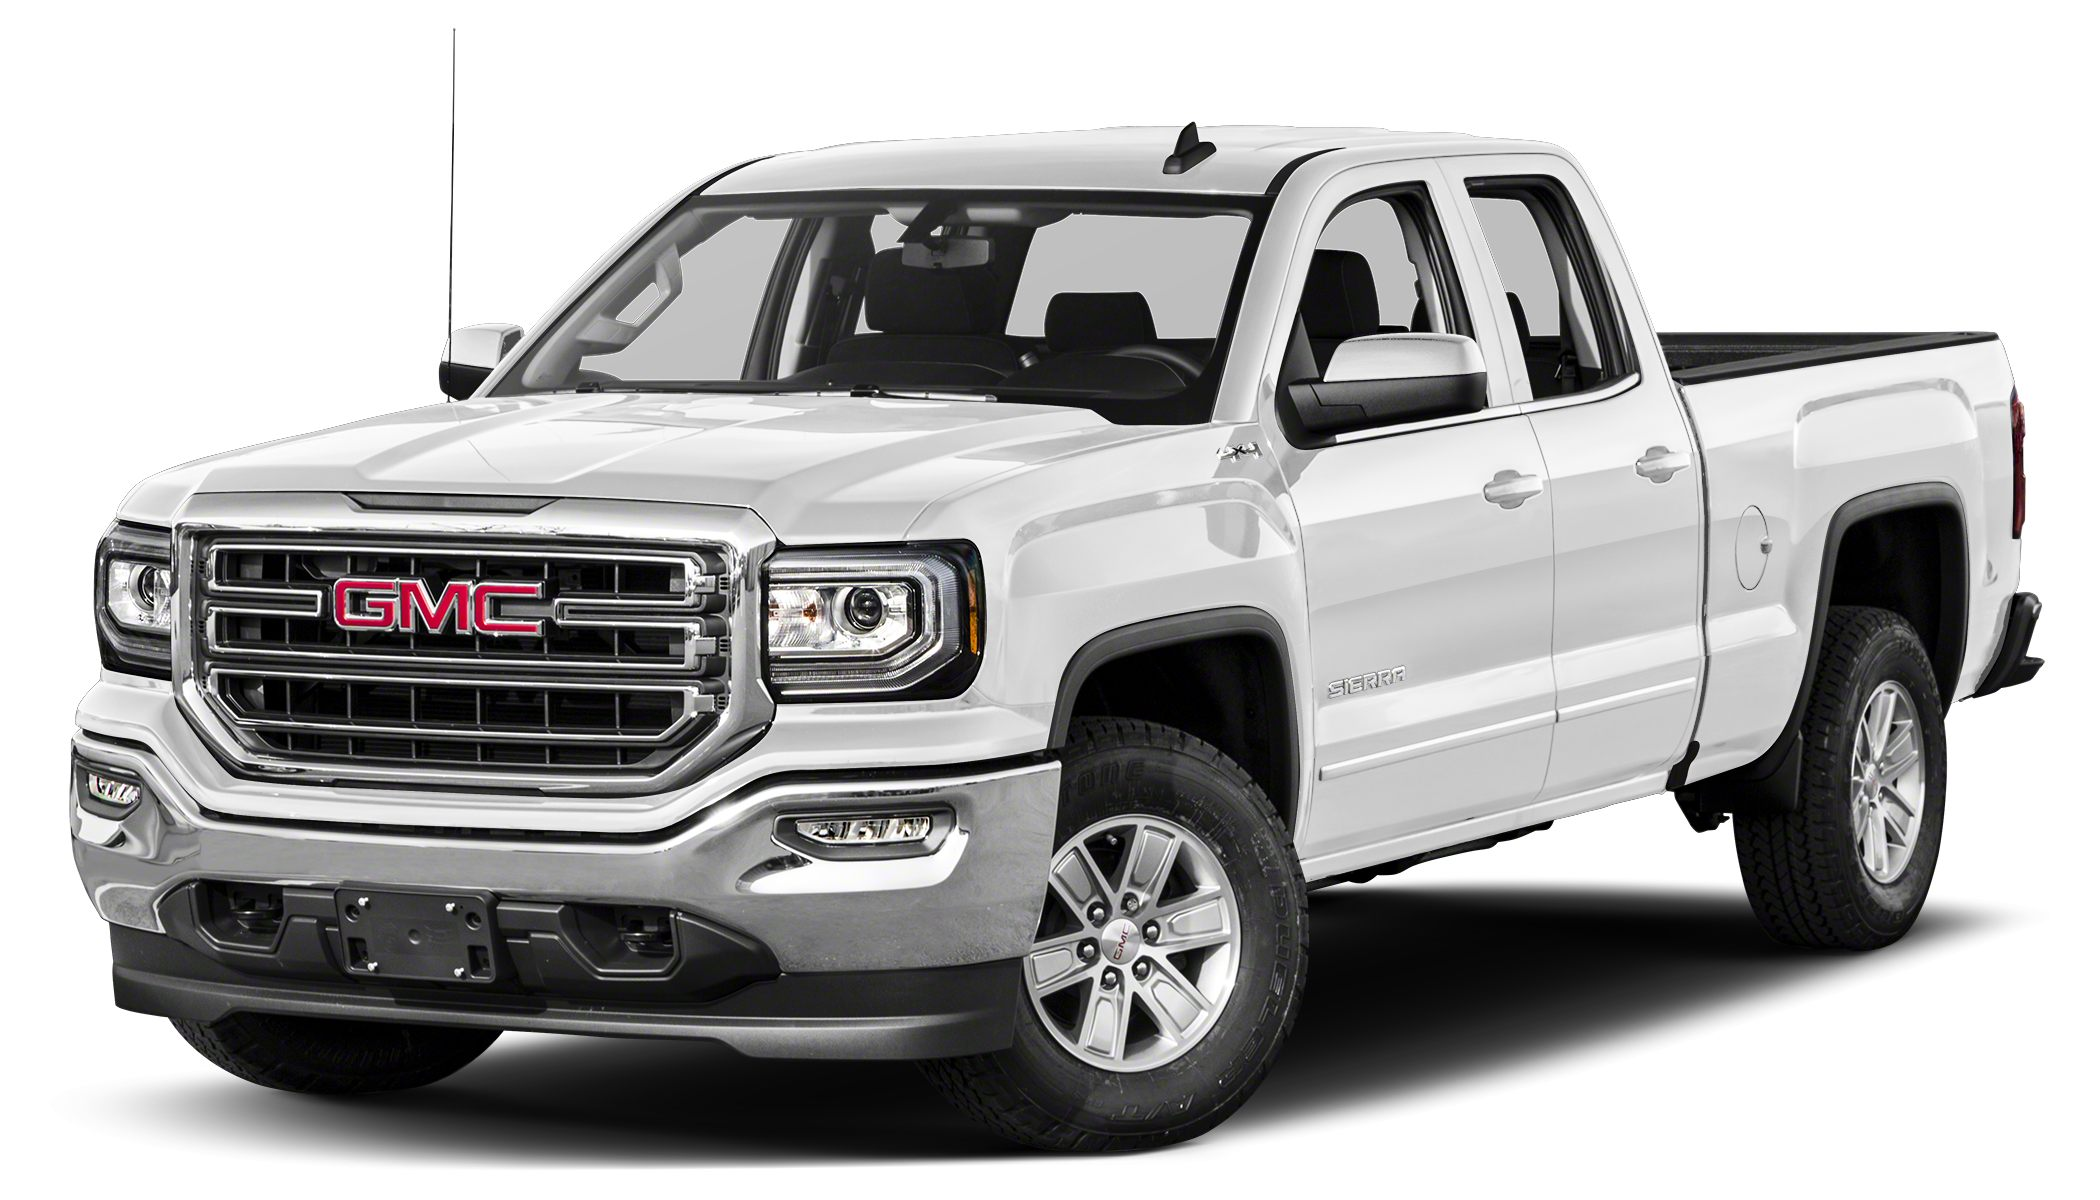 2018 GMC Sierra 1500 SLE This 2018 GMC Sierra 1500 SLE is a real winner with features like a backu